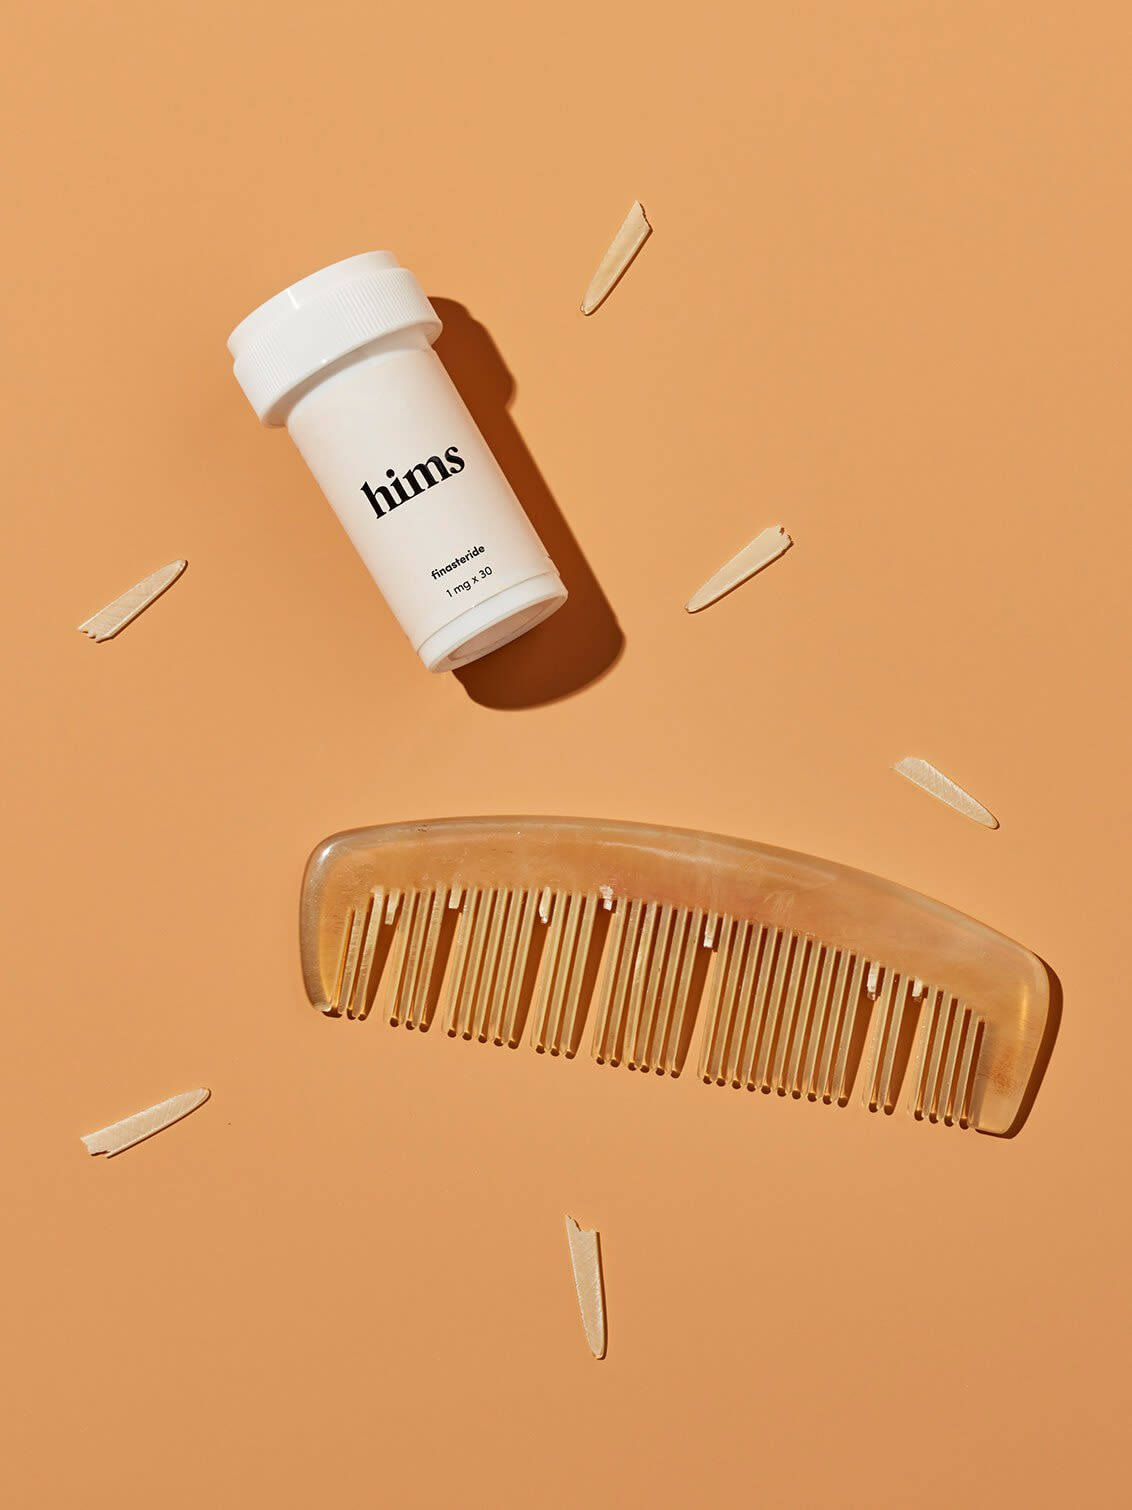 A bottle of Finasteride and a comb with its teeth falling out, scattered around